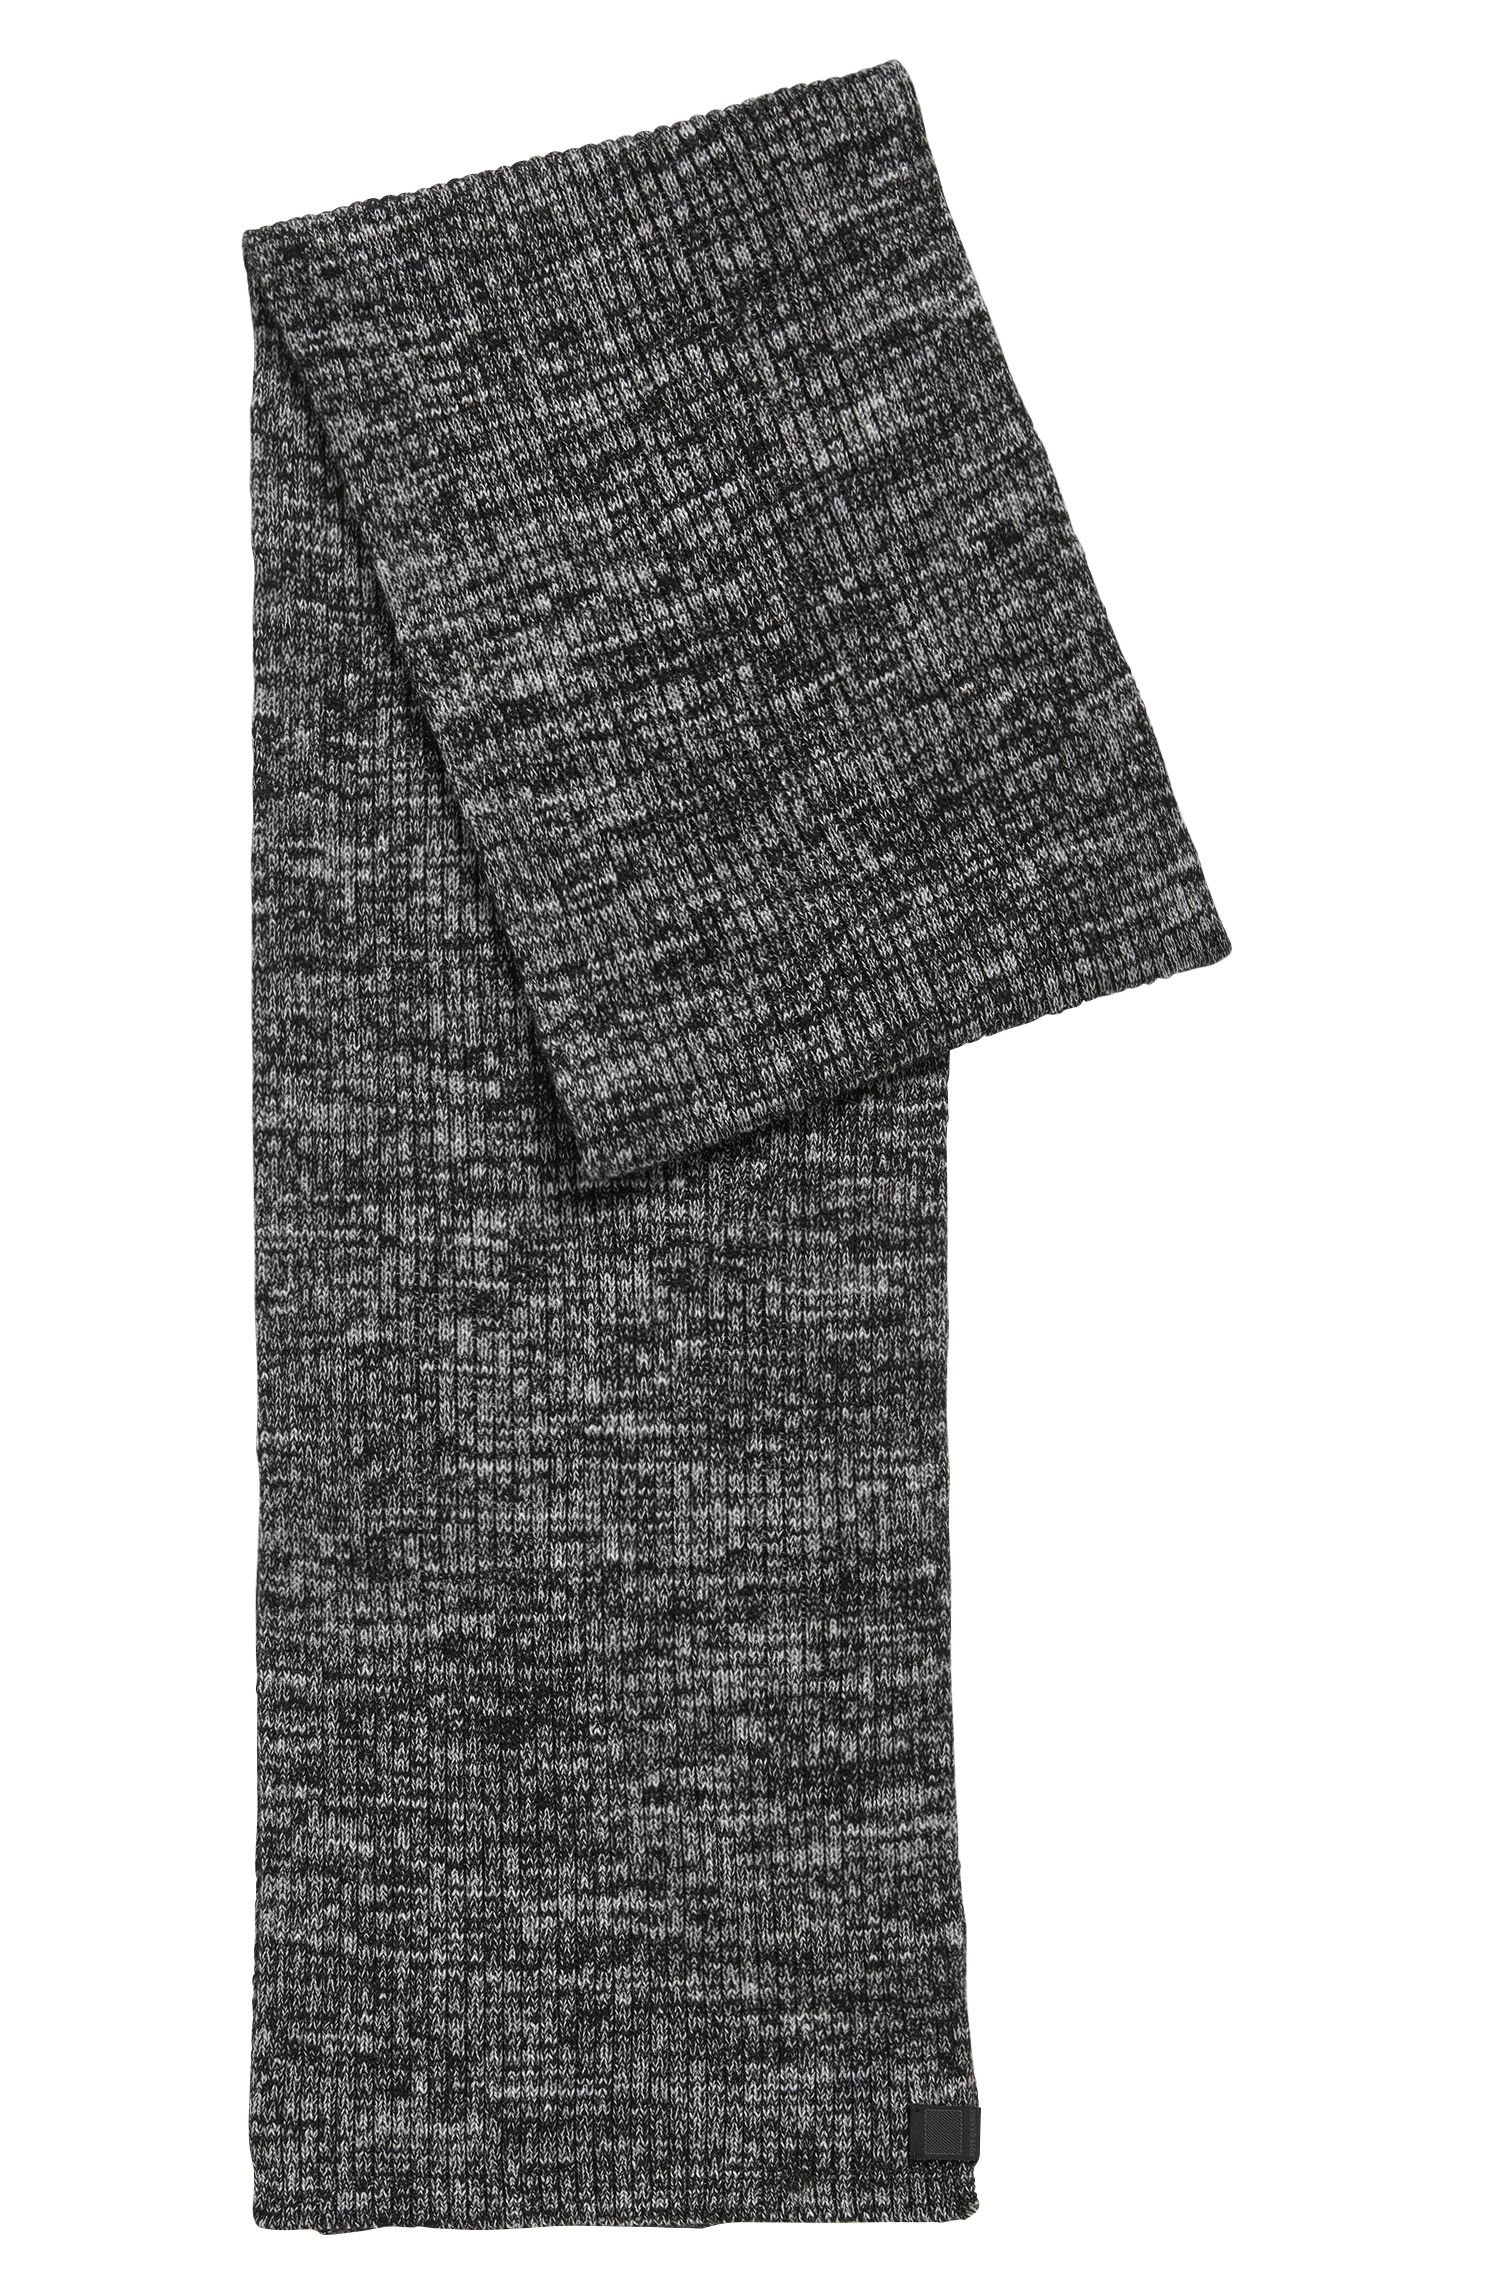 Ribbed scarf in a mouliné cotton blend